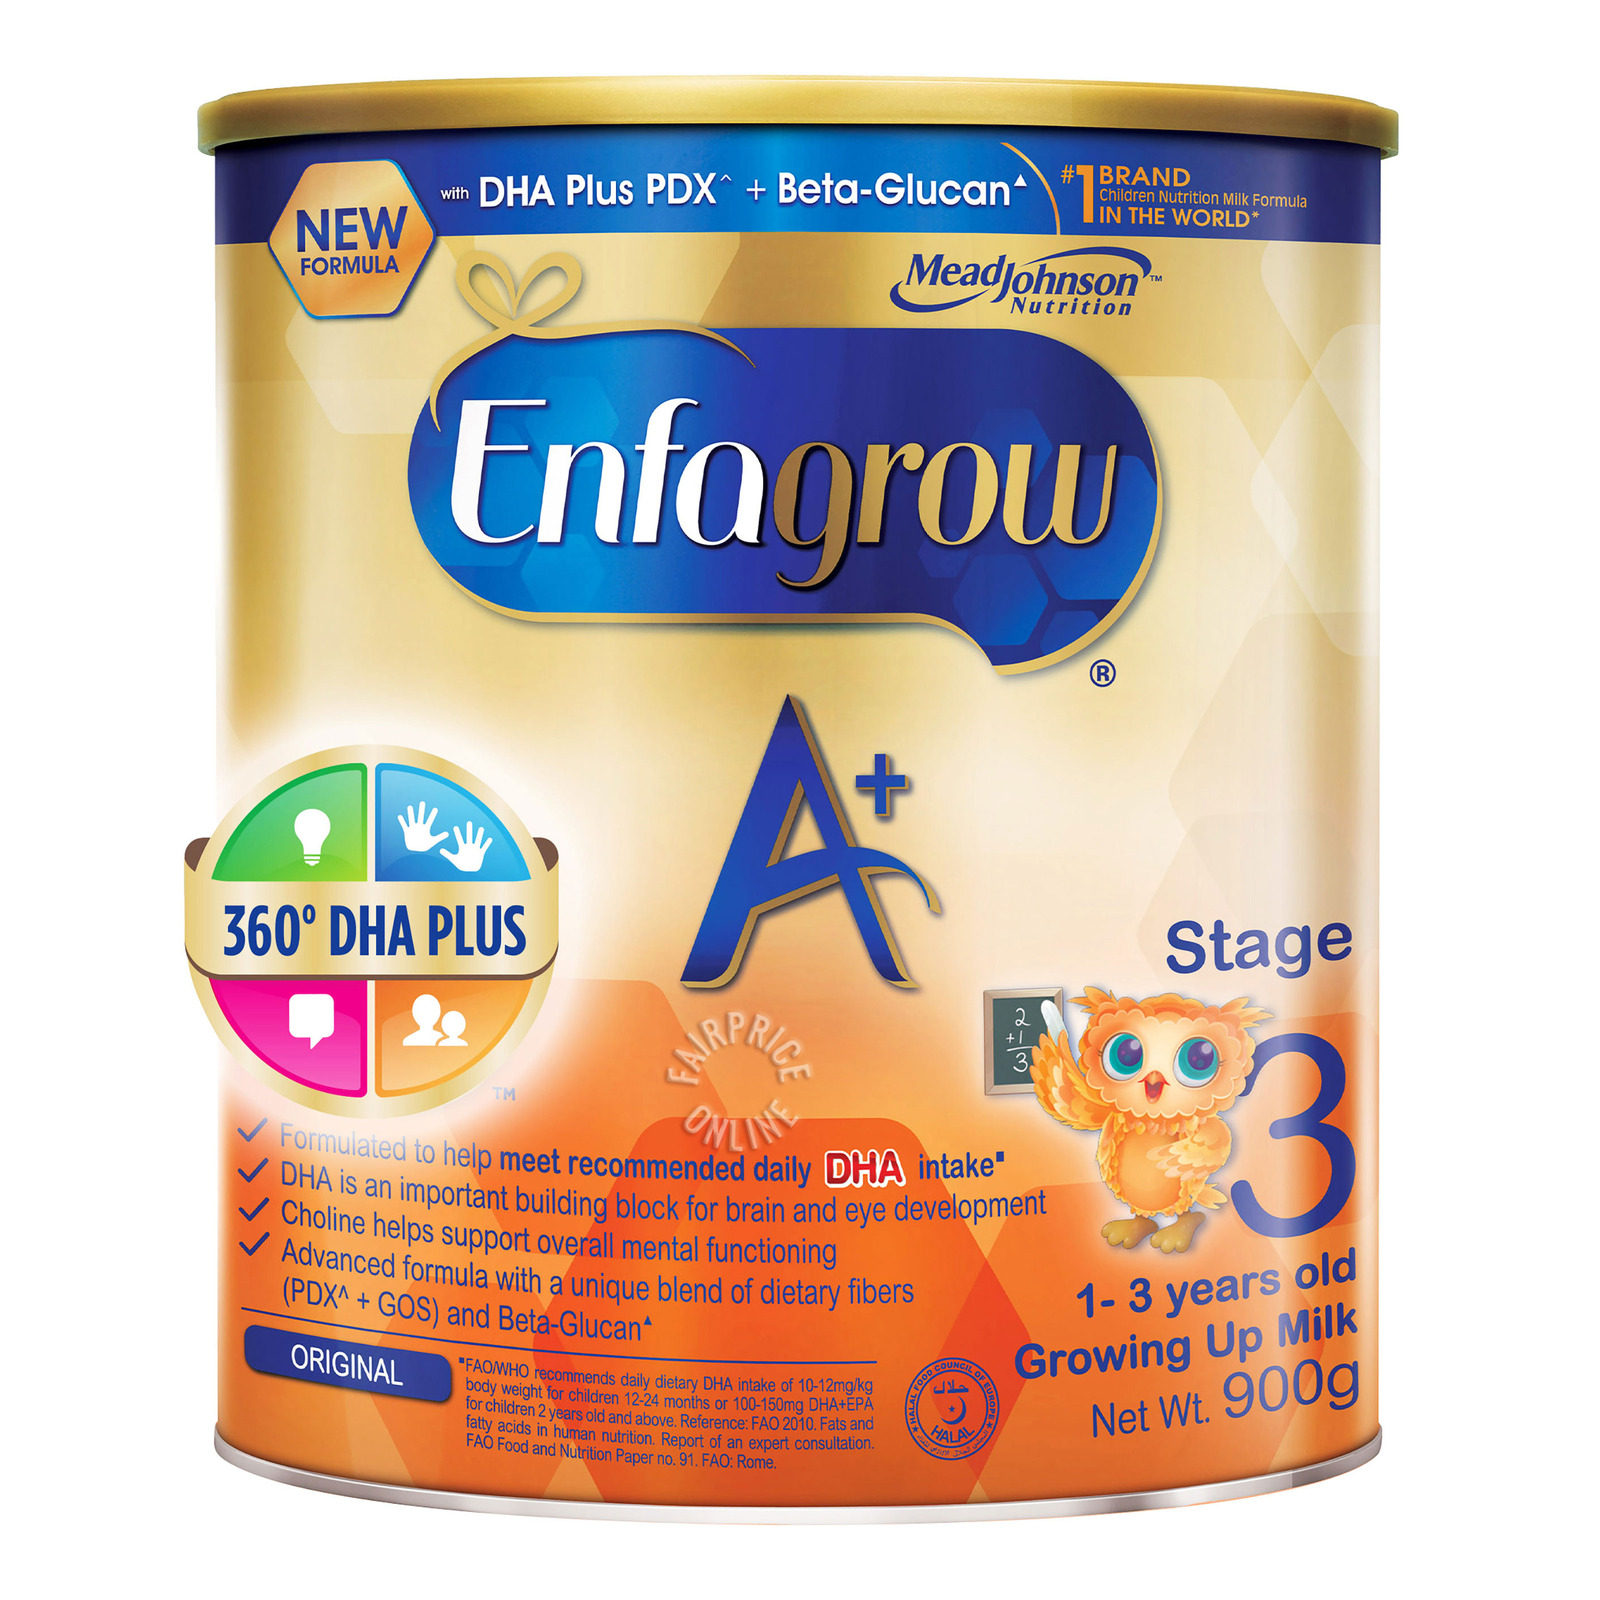 Enfagrow A+ Toddler Milk Powder Formula - Stage 3 (Original)